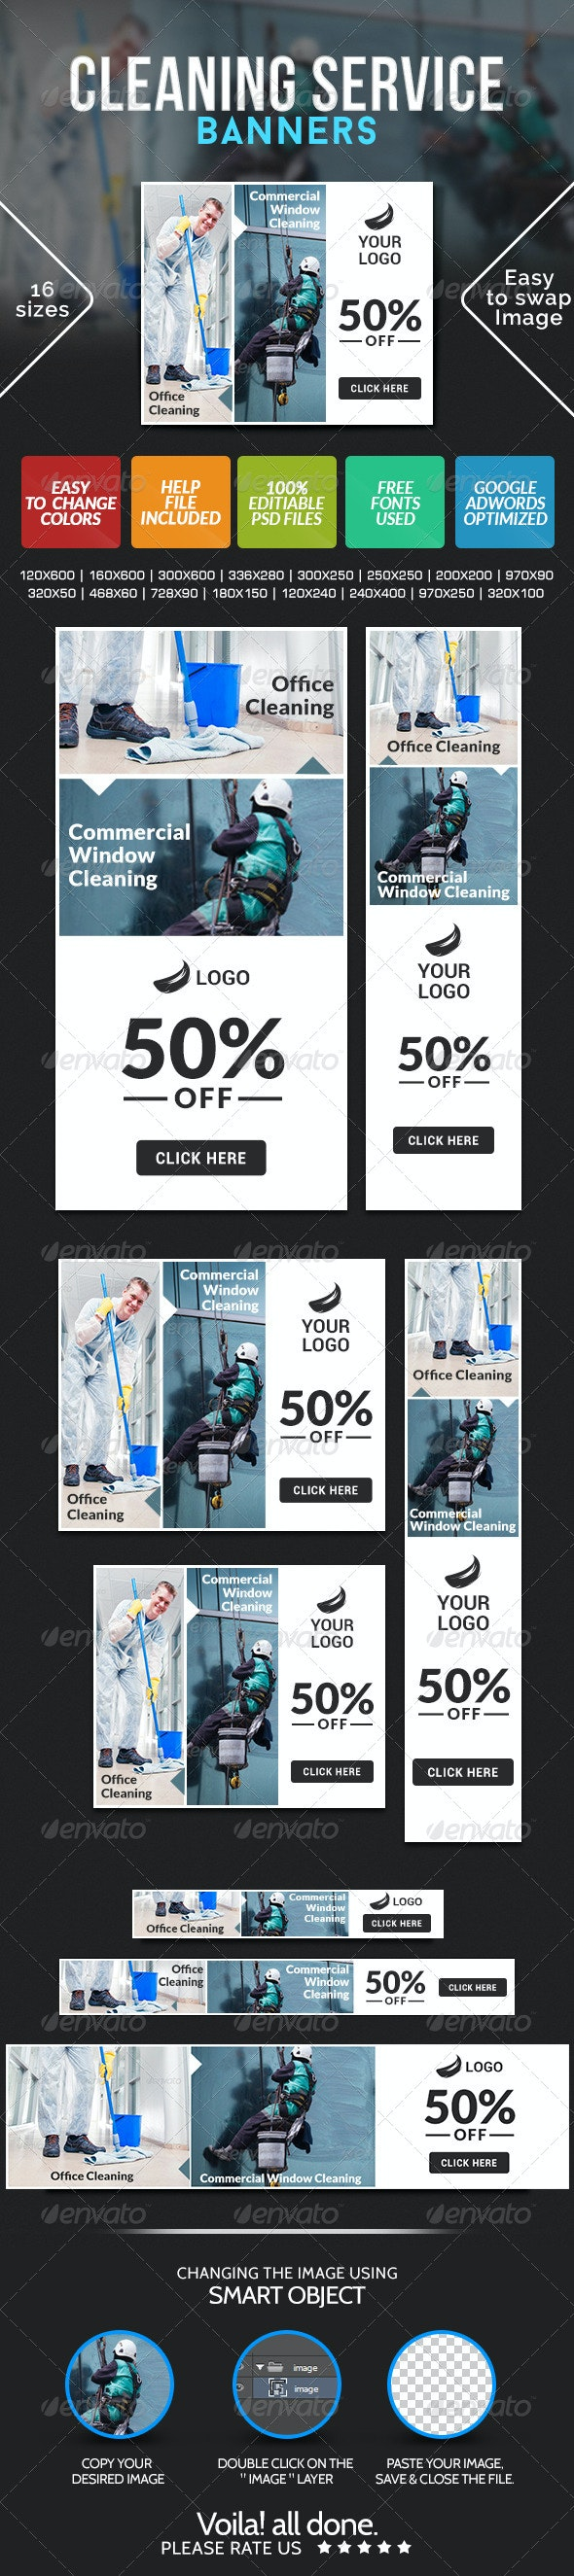 Banner Design for Cleaning Services - Banners & Ads Web Elements